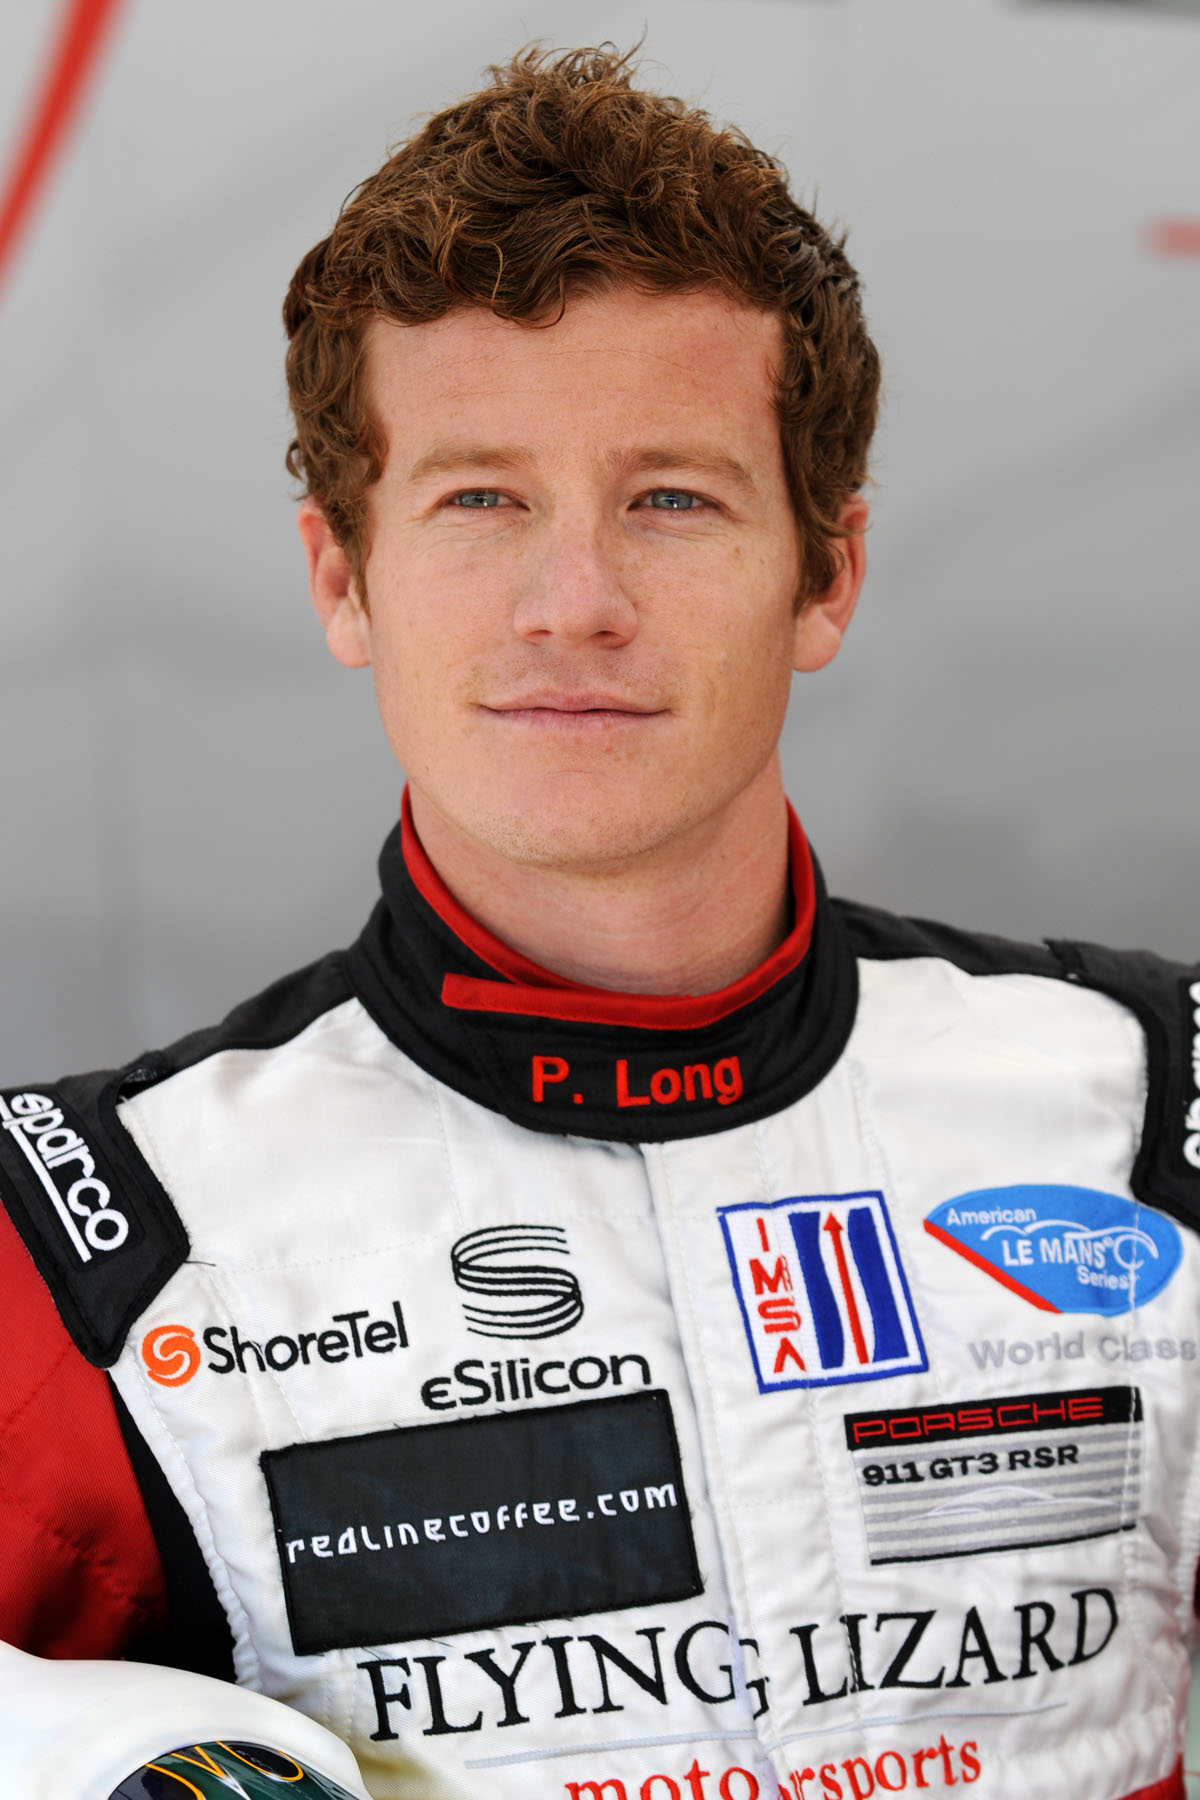 Patrick-Long-Porsche-Flying-Lizard